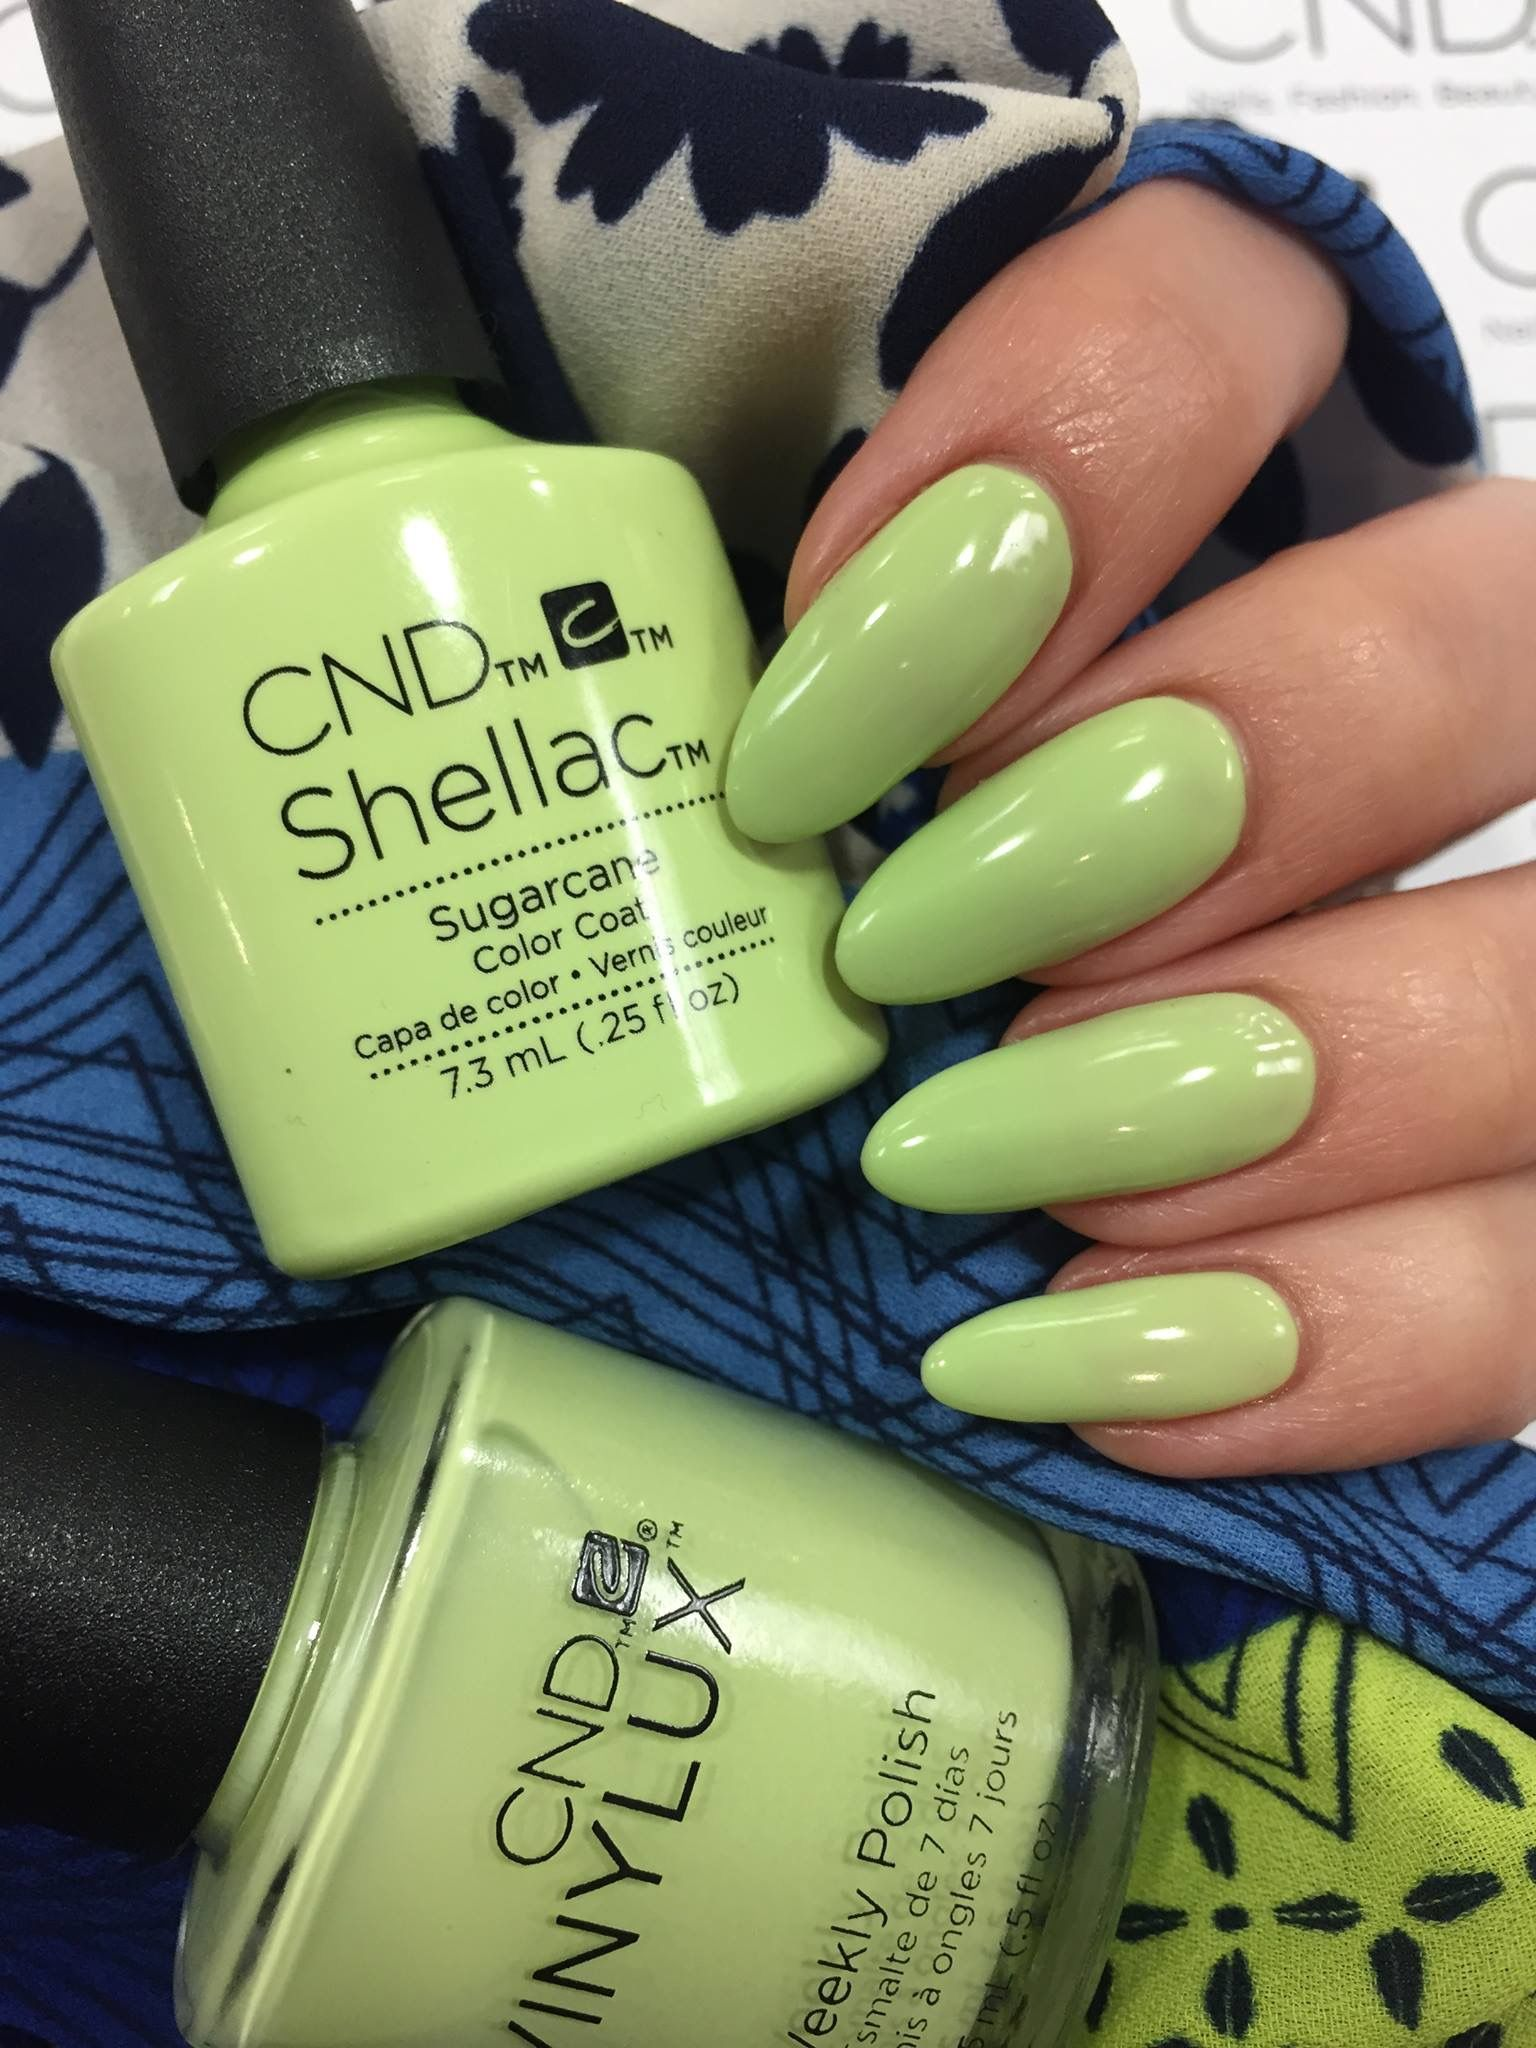 Shellac sugarcane | Nail Art and more nail art | Pinterest